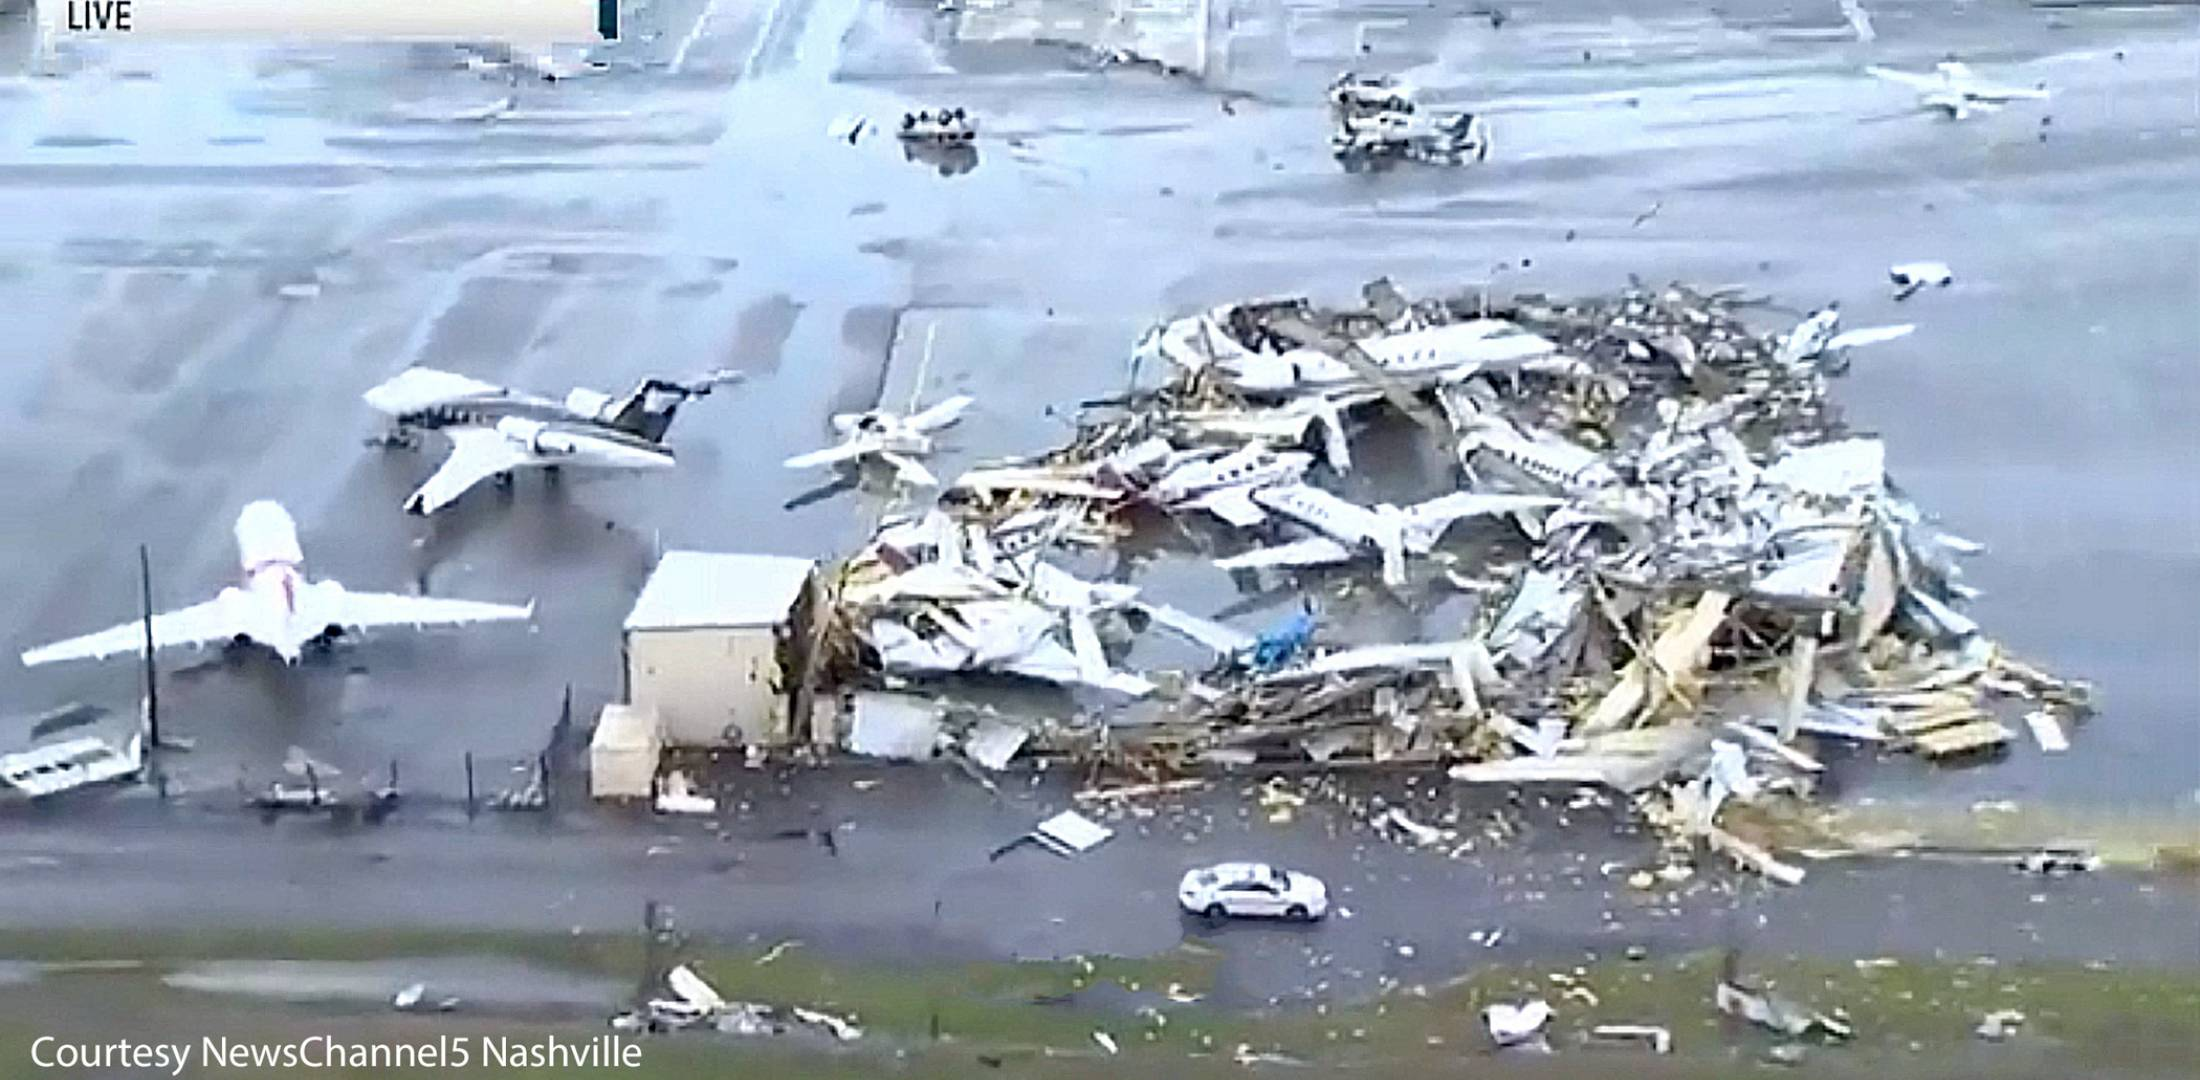 Tornadoes kill at least 22 in Tennessee and damage Nashville airport